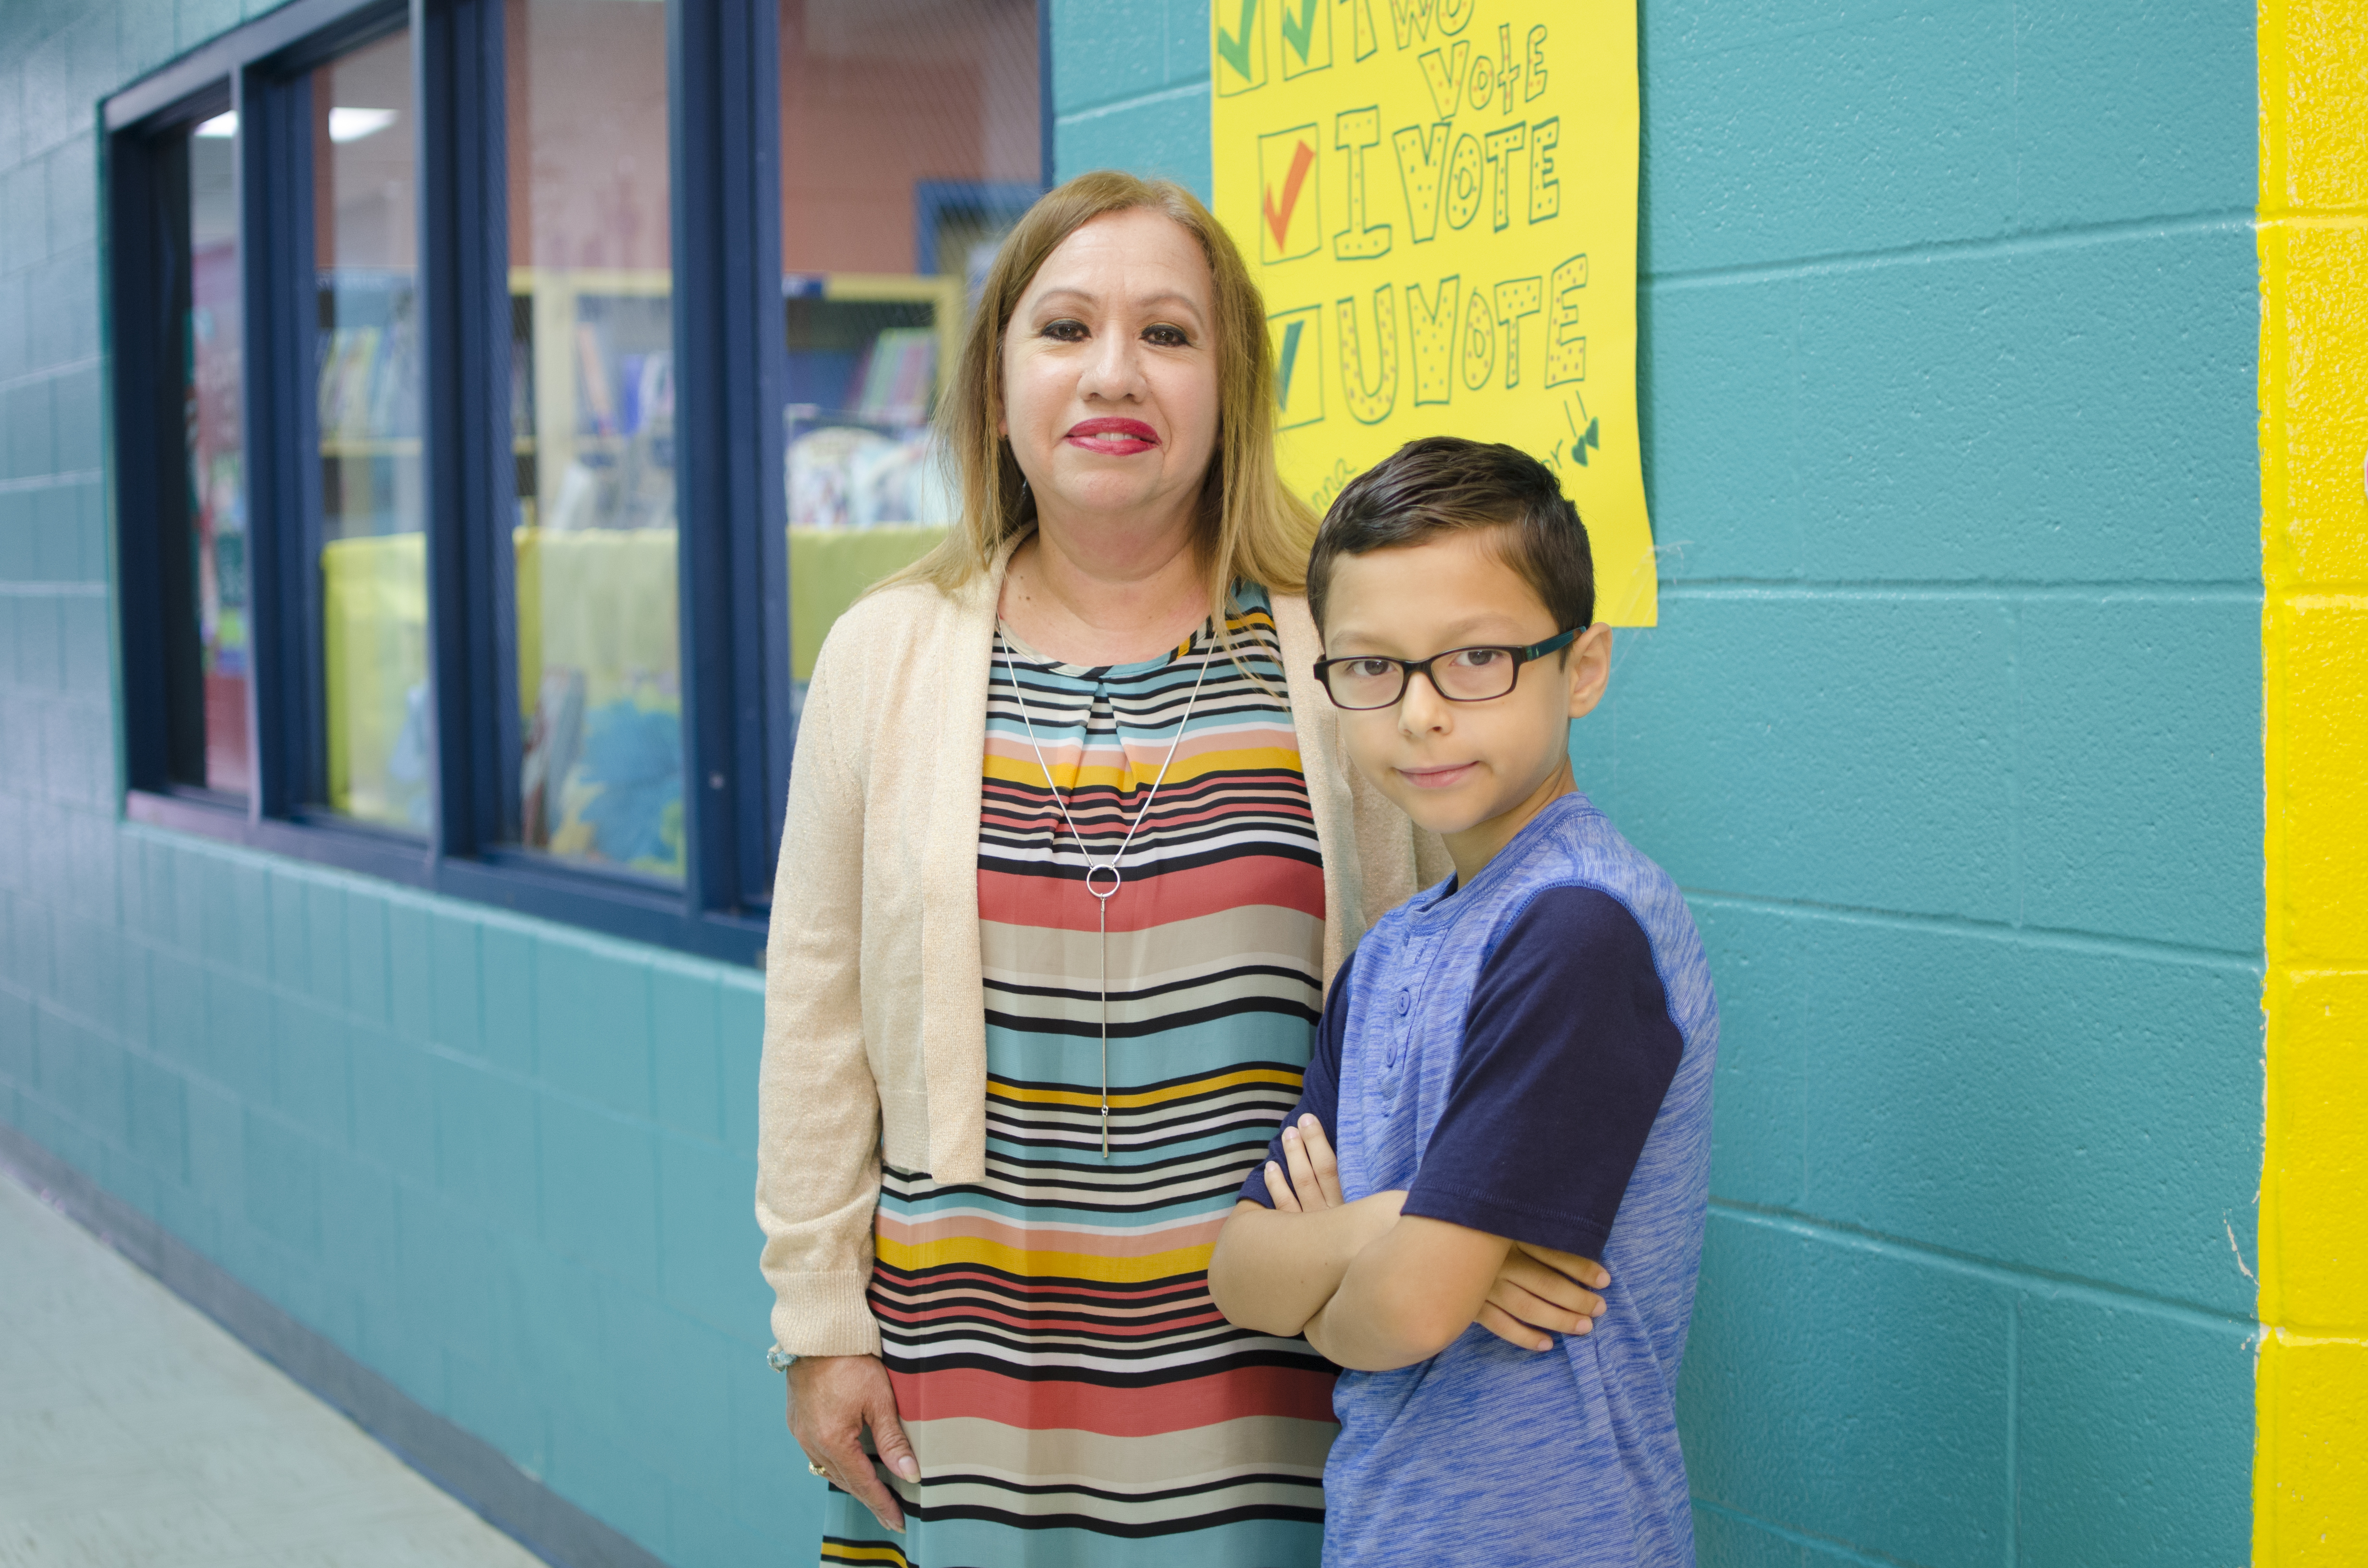 Bonham Elementary student saves grandmother from drowning after taking SEAL swim lessons